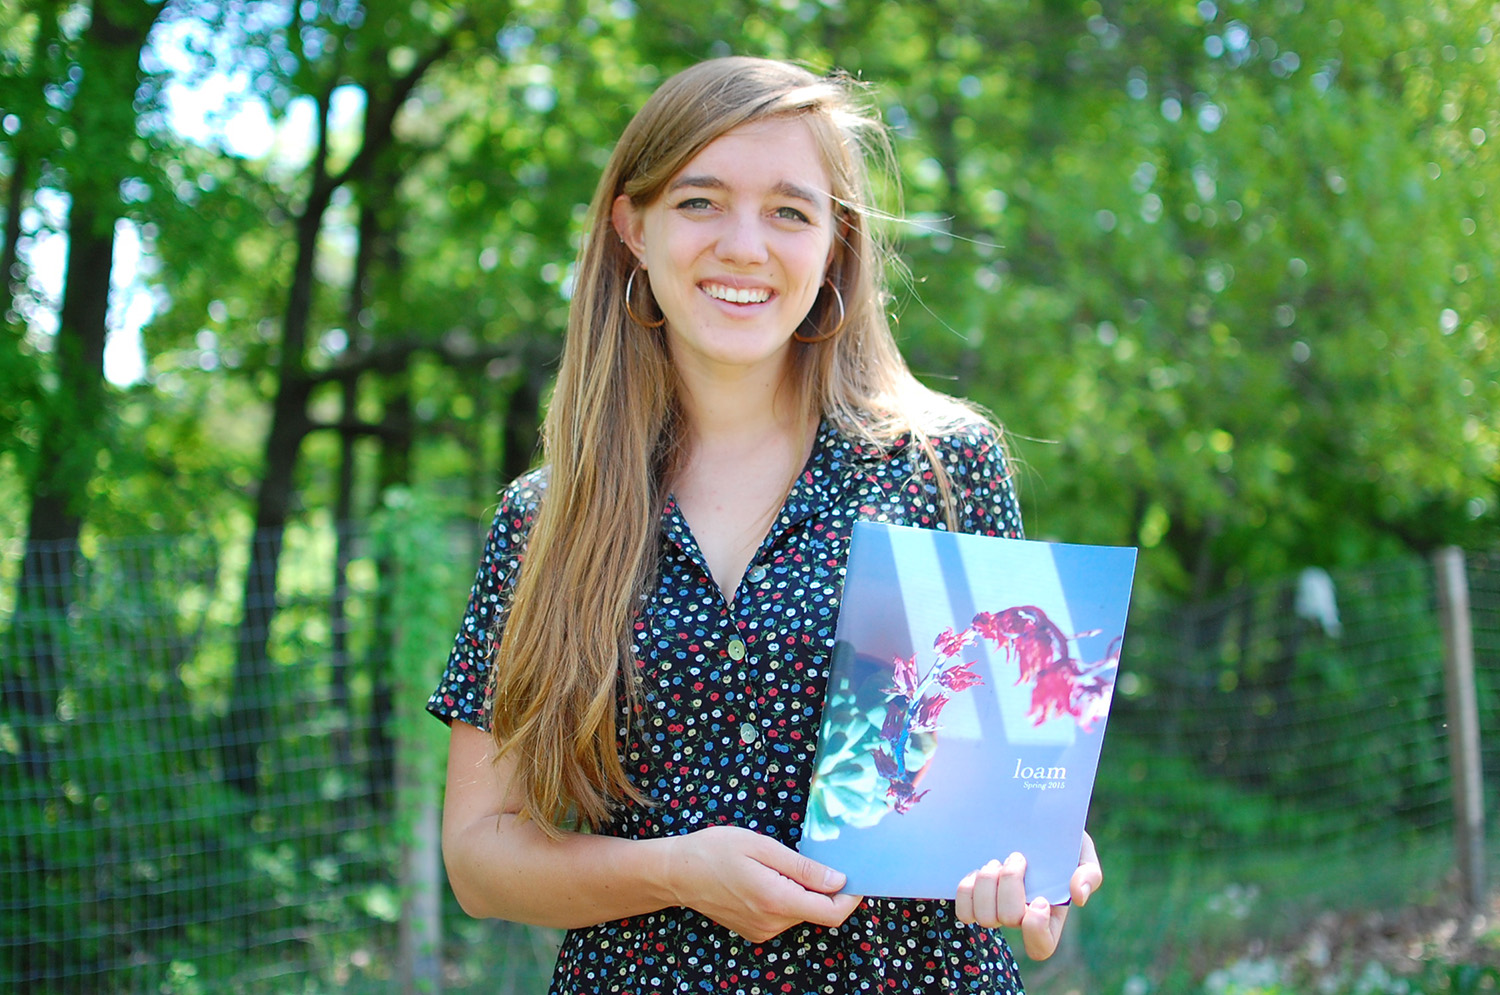 Nicole Stanton '15 is co-editor of Loam magazine. Loam celebrates Wesleyan's environmental activism and artistic expression of the student body. (Photo by Laurie Kenney)